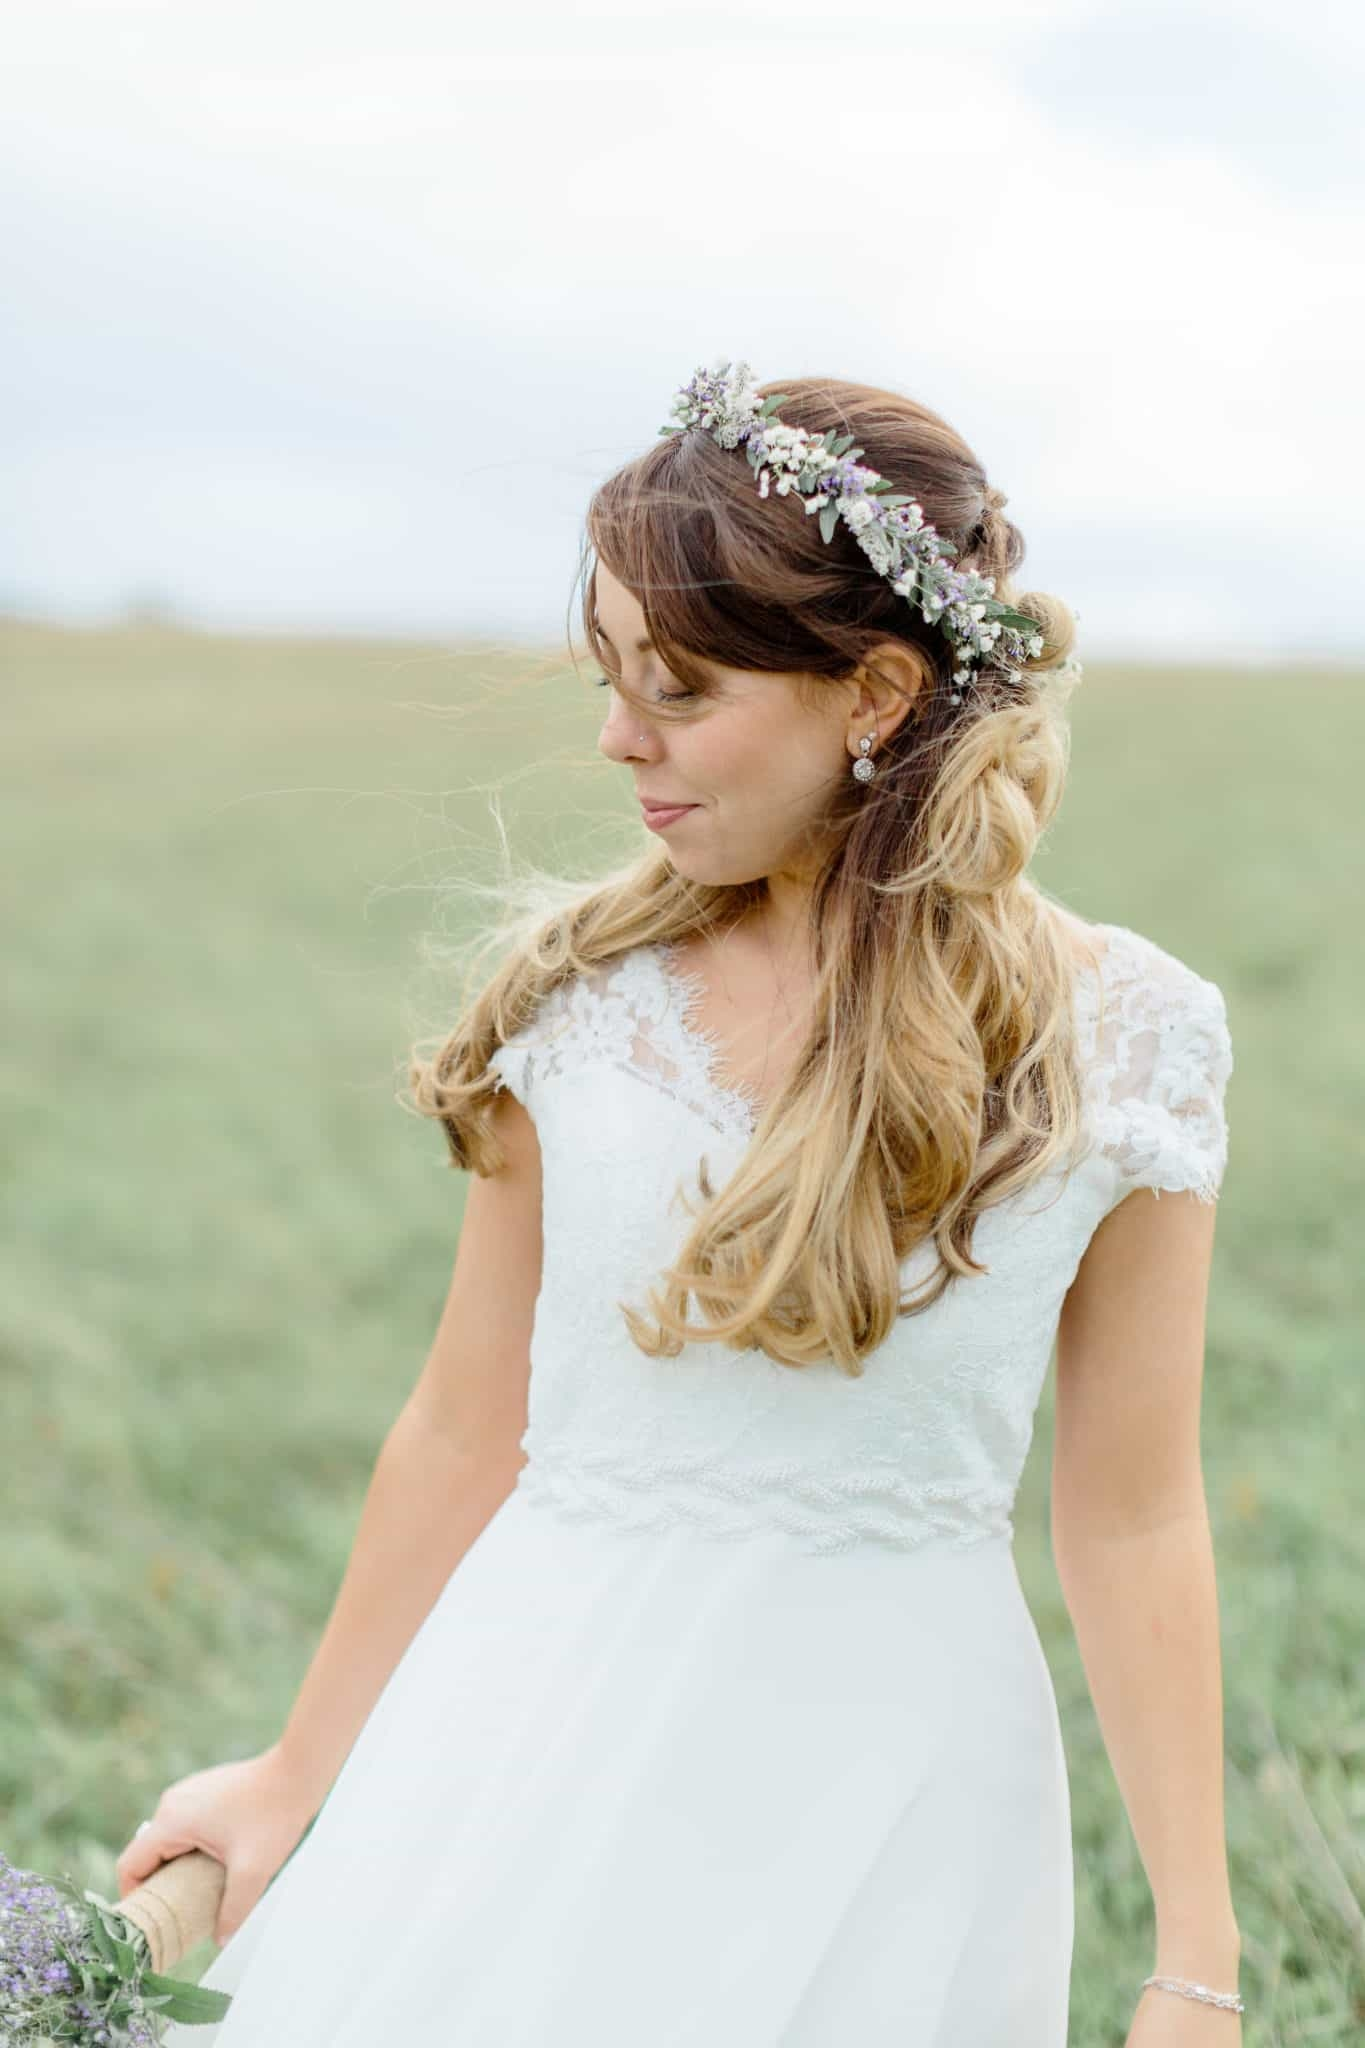 boho bride with flower crown in field